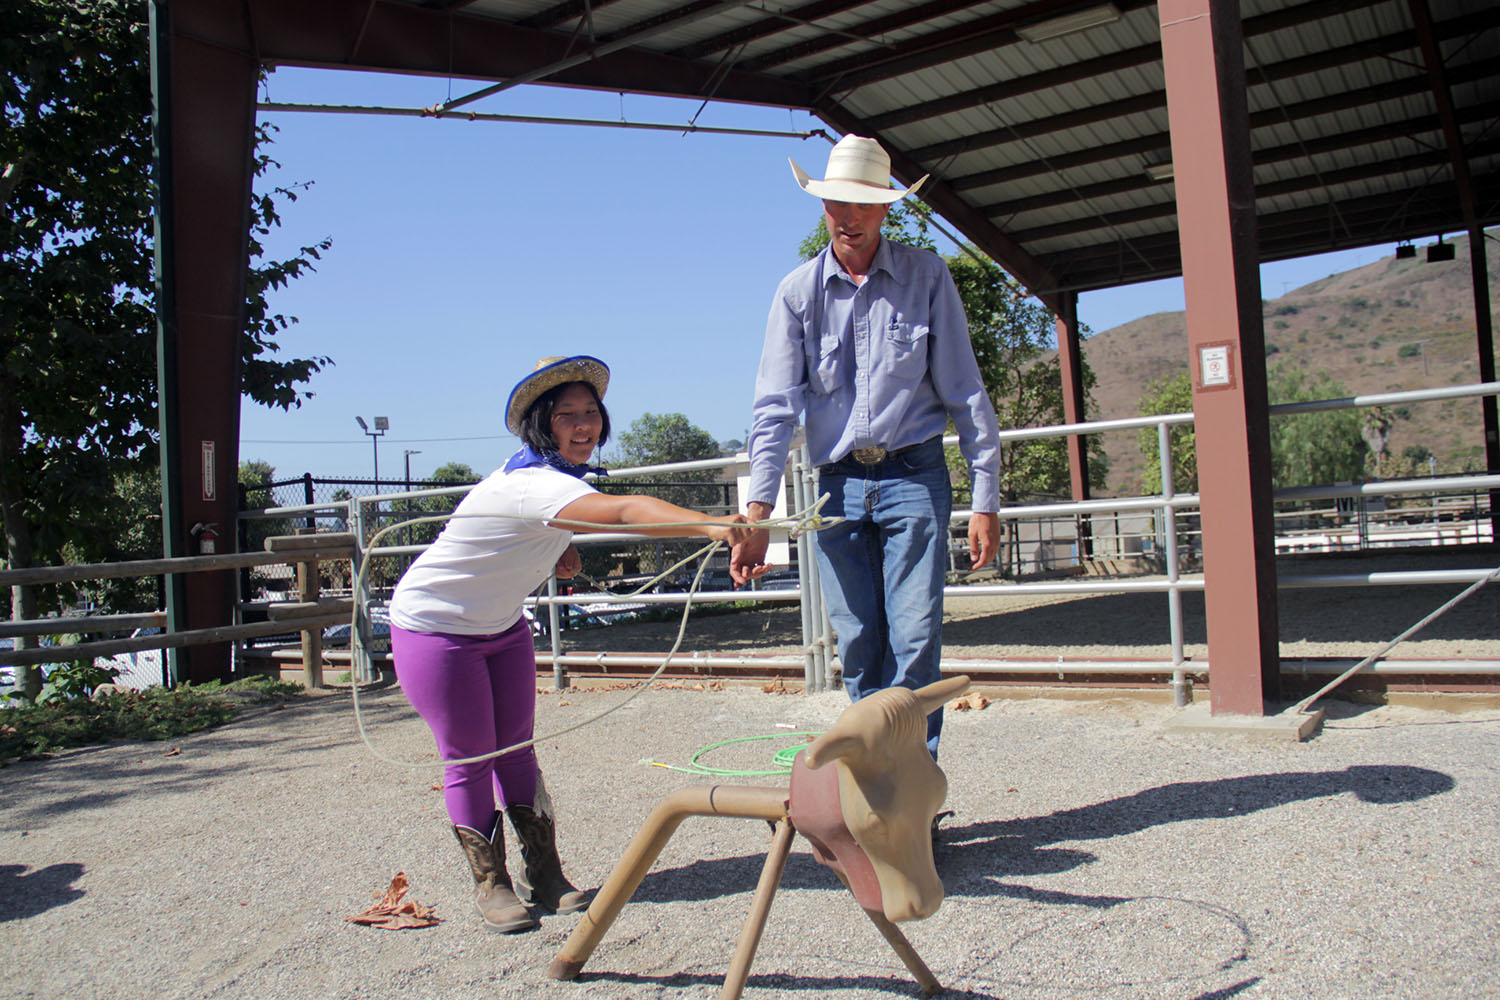 With Brent Freese as her teacher, Makena Lee takes aim while attempting to lasso the horns of a fake steer at the Shea Center's annual Cowboy Camp. Photo: Shawn Raymundo